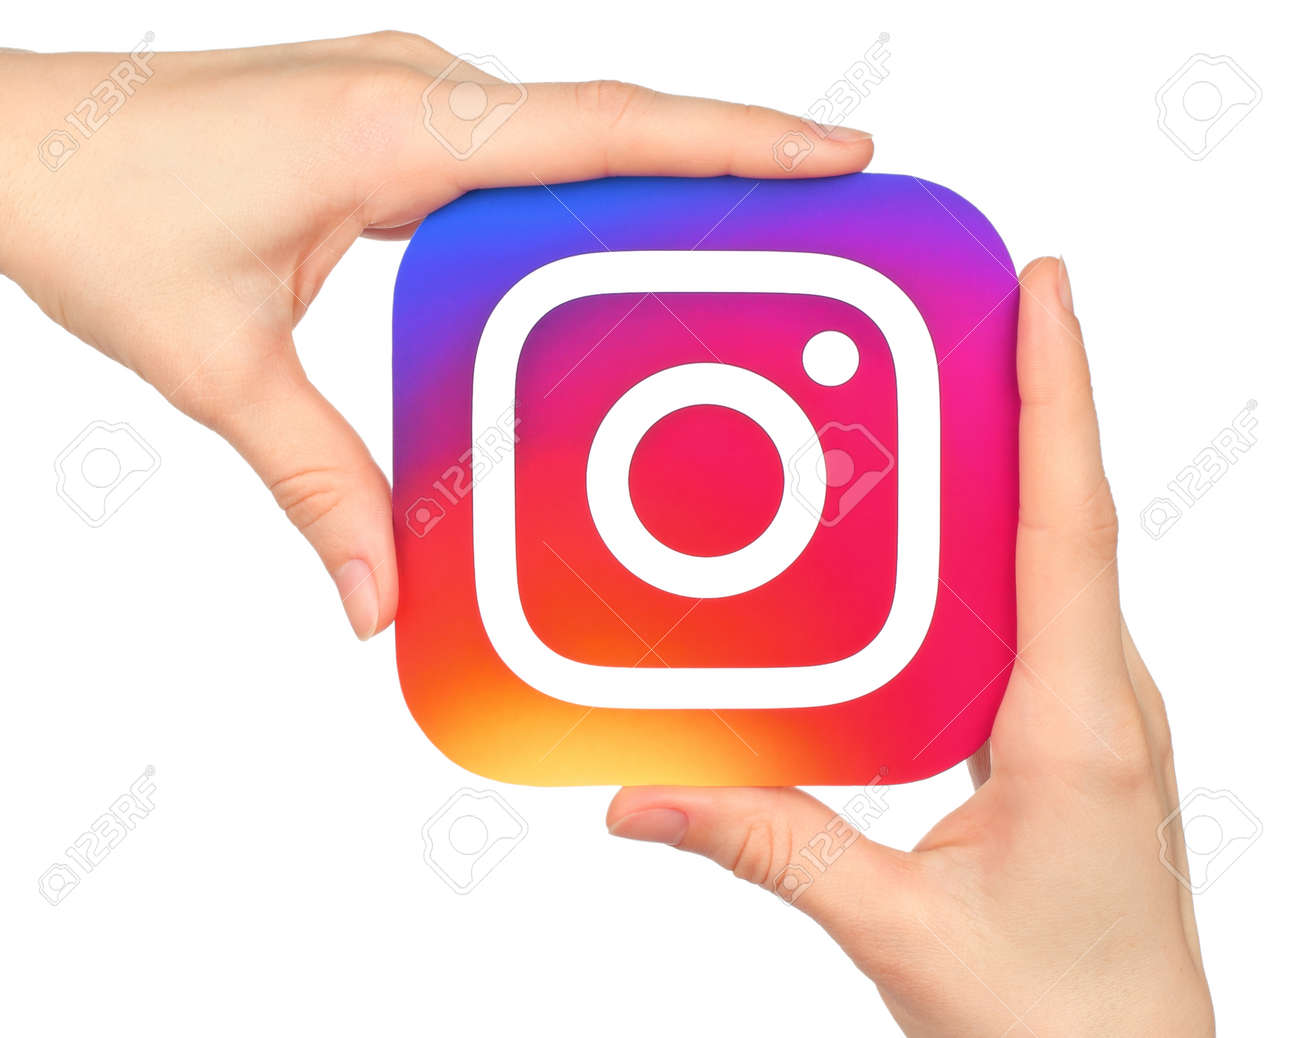 Kiev, Ukraine - January 20, 2016: Hands hold Instagram icon printed on paper. Instagram is an online mobile photo-sharing, video-sharing service - 80455285